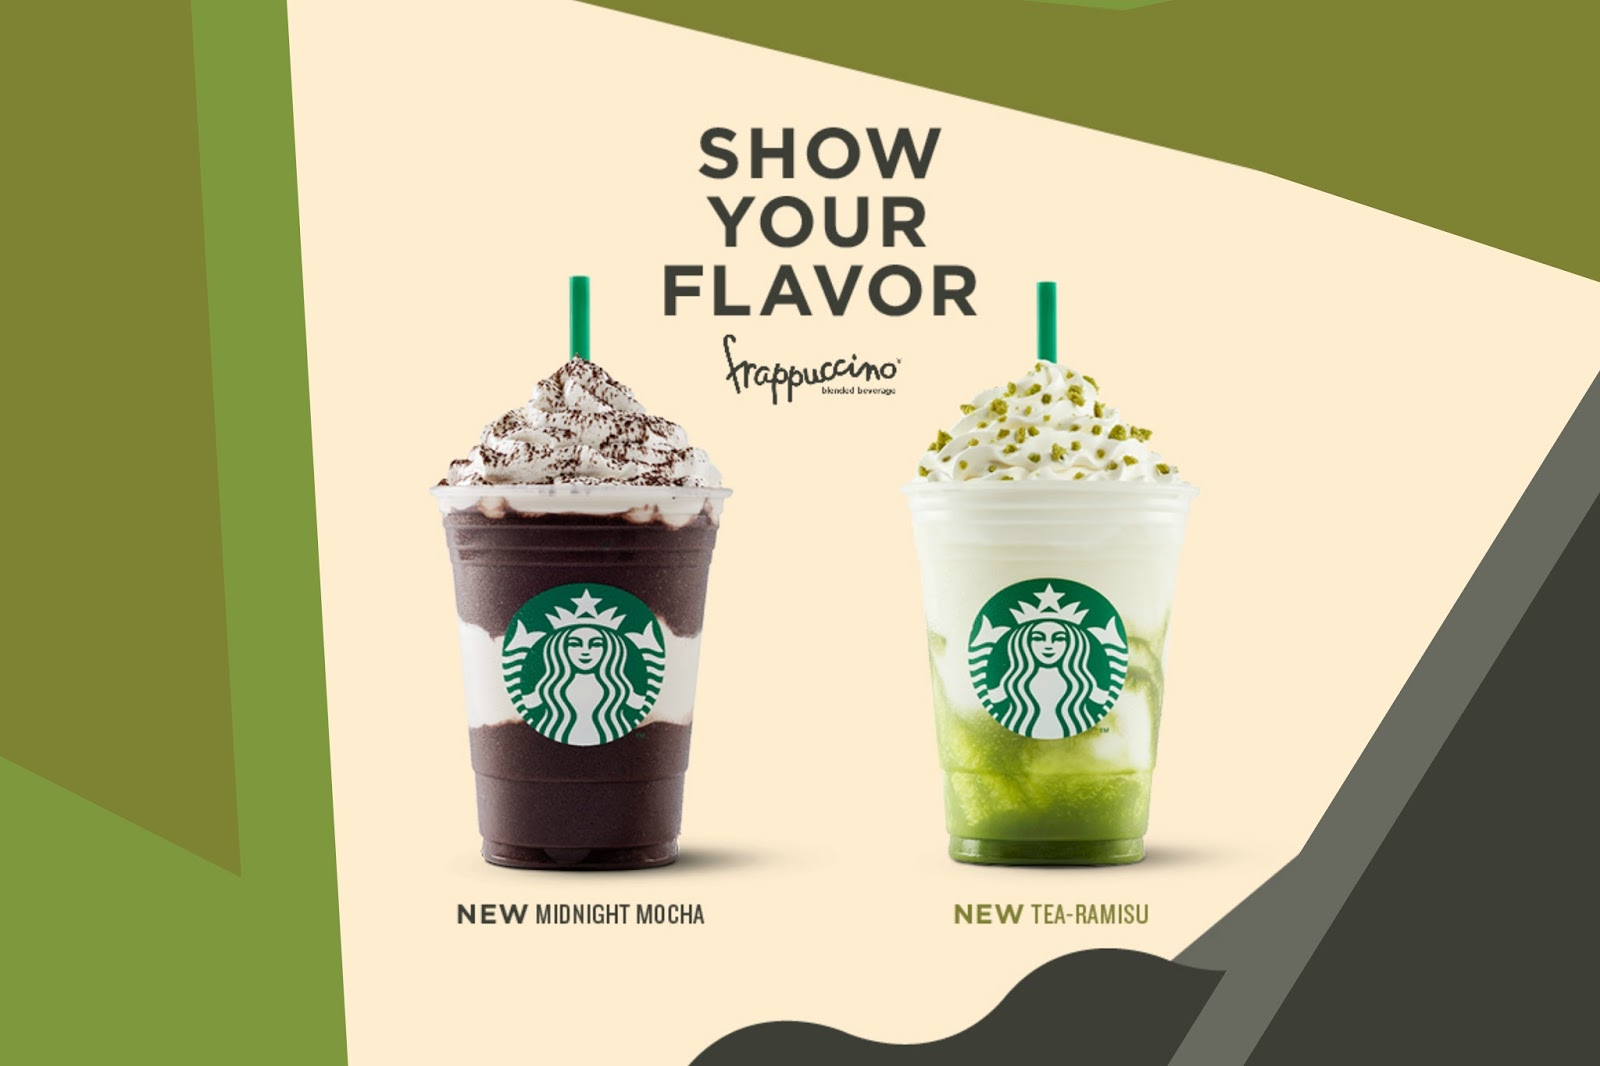 Starbucks launched 2 summer flavors - Tea-ramisu and Midnight Mocha Frappuccino